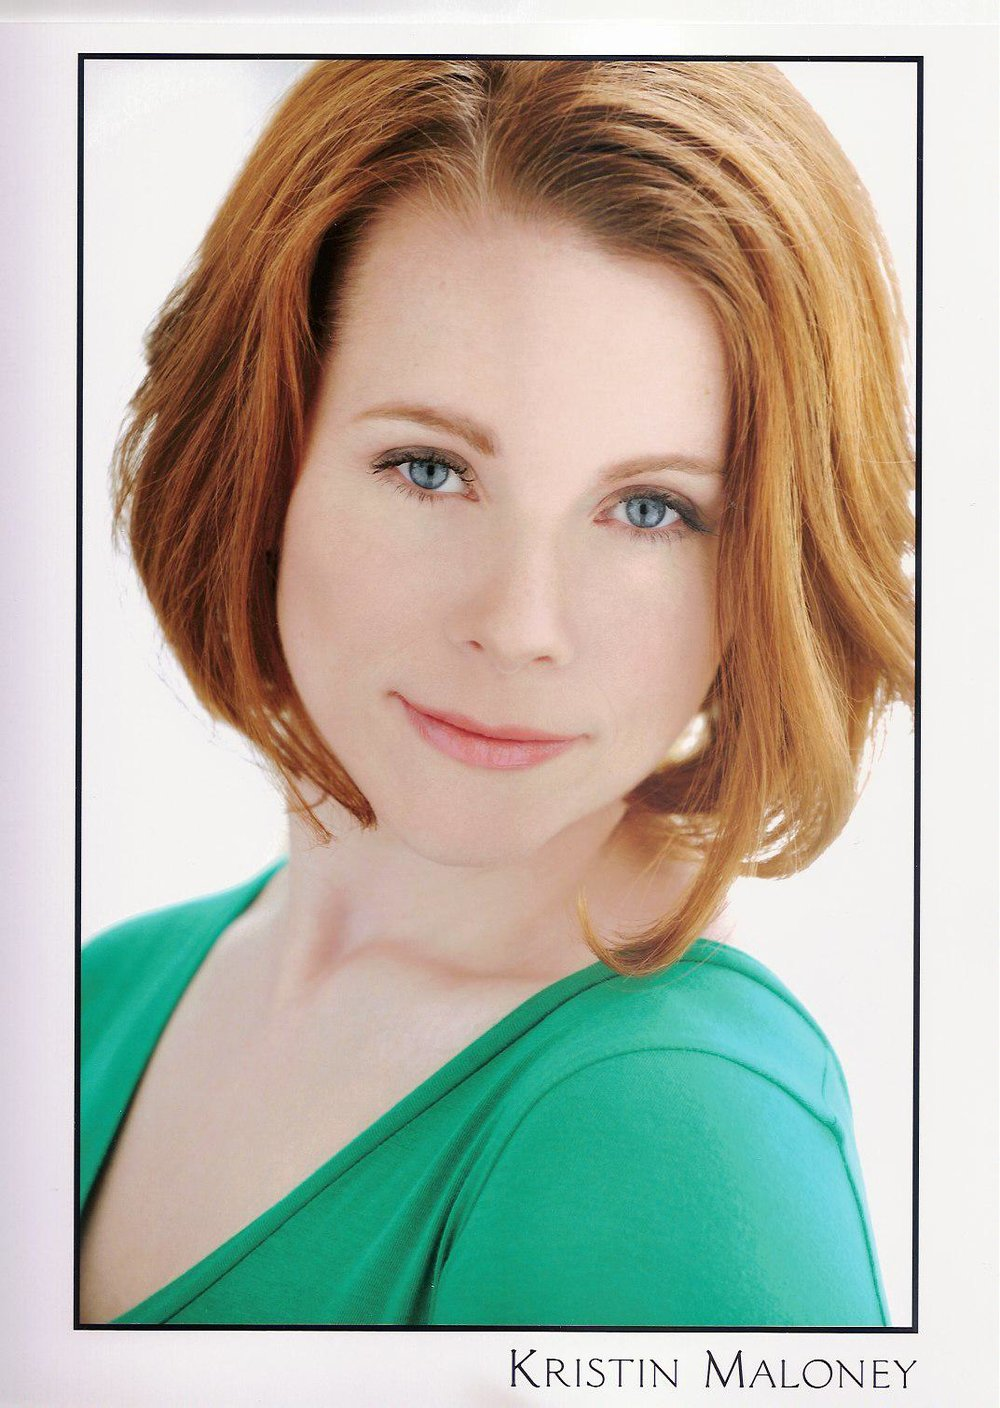 Kristin Maloney Headshot2.jpg